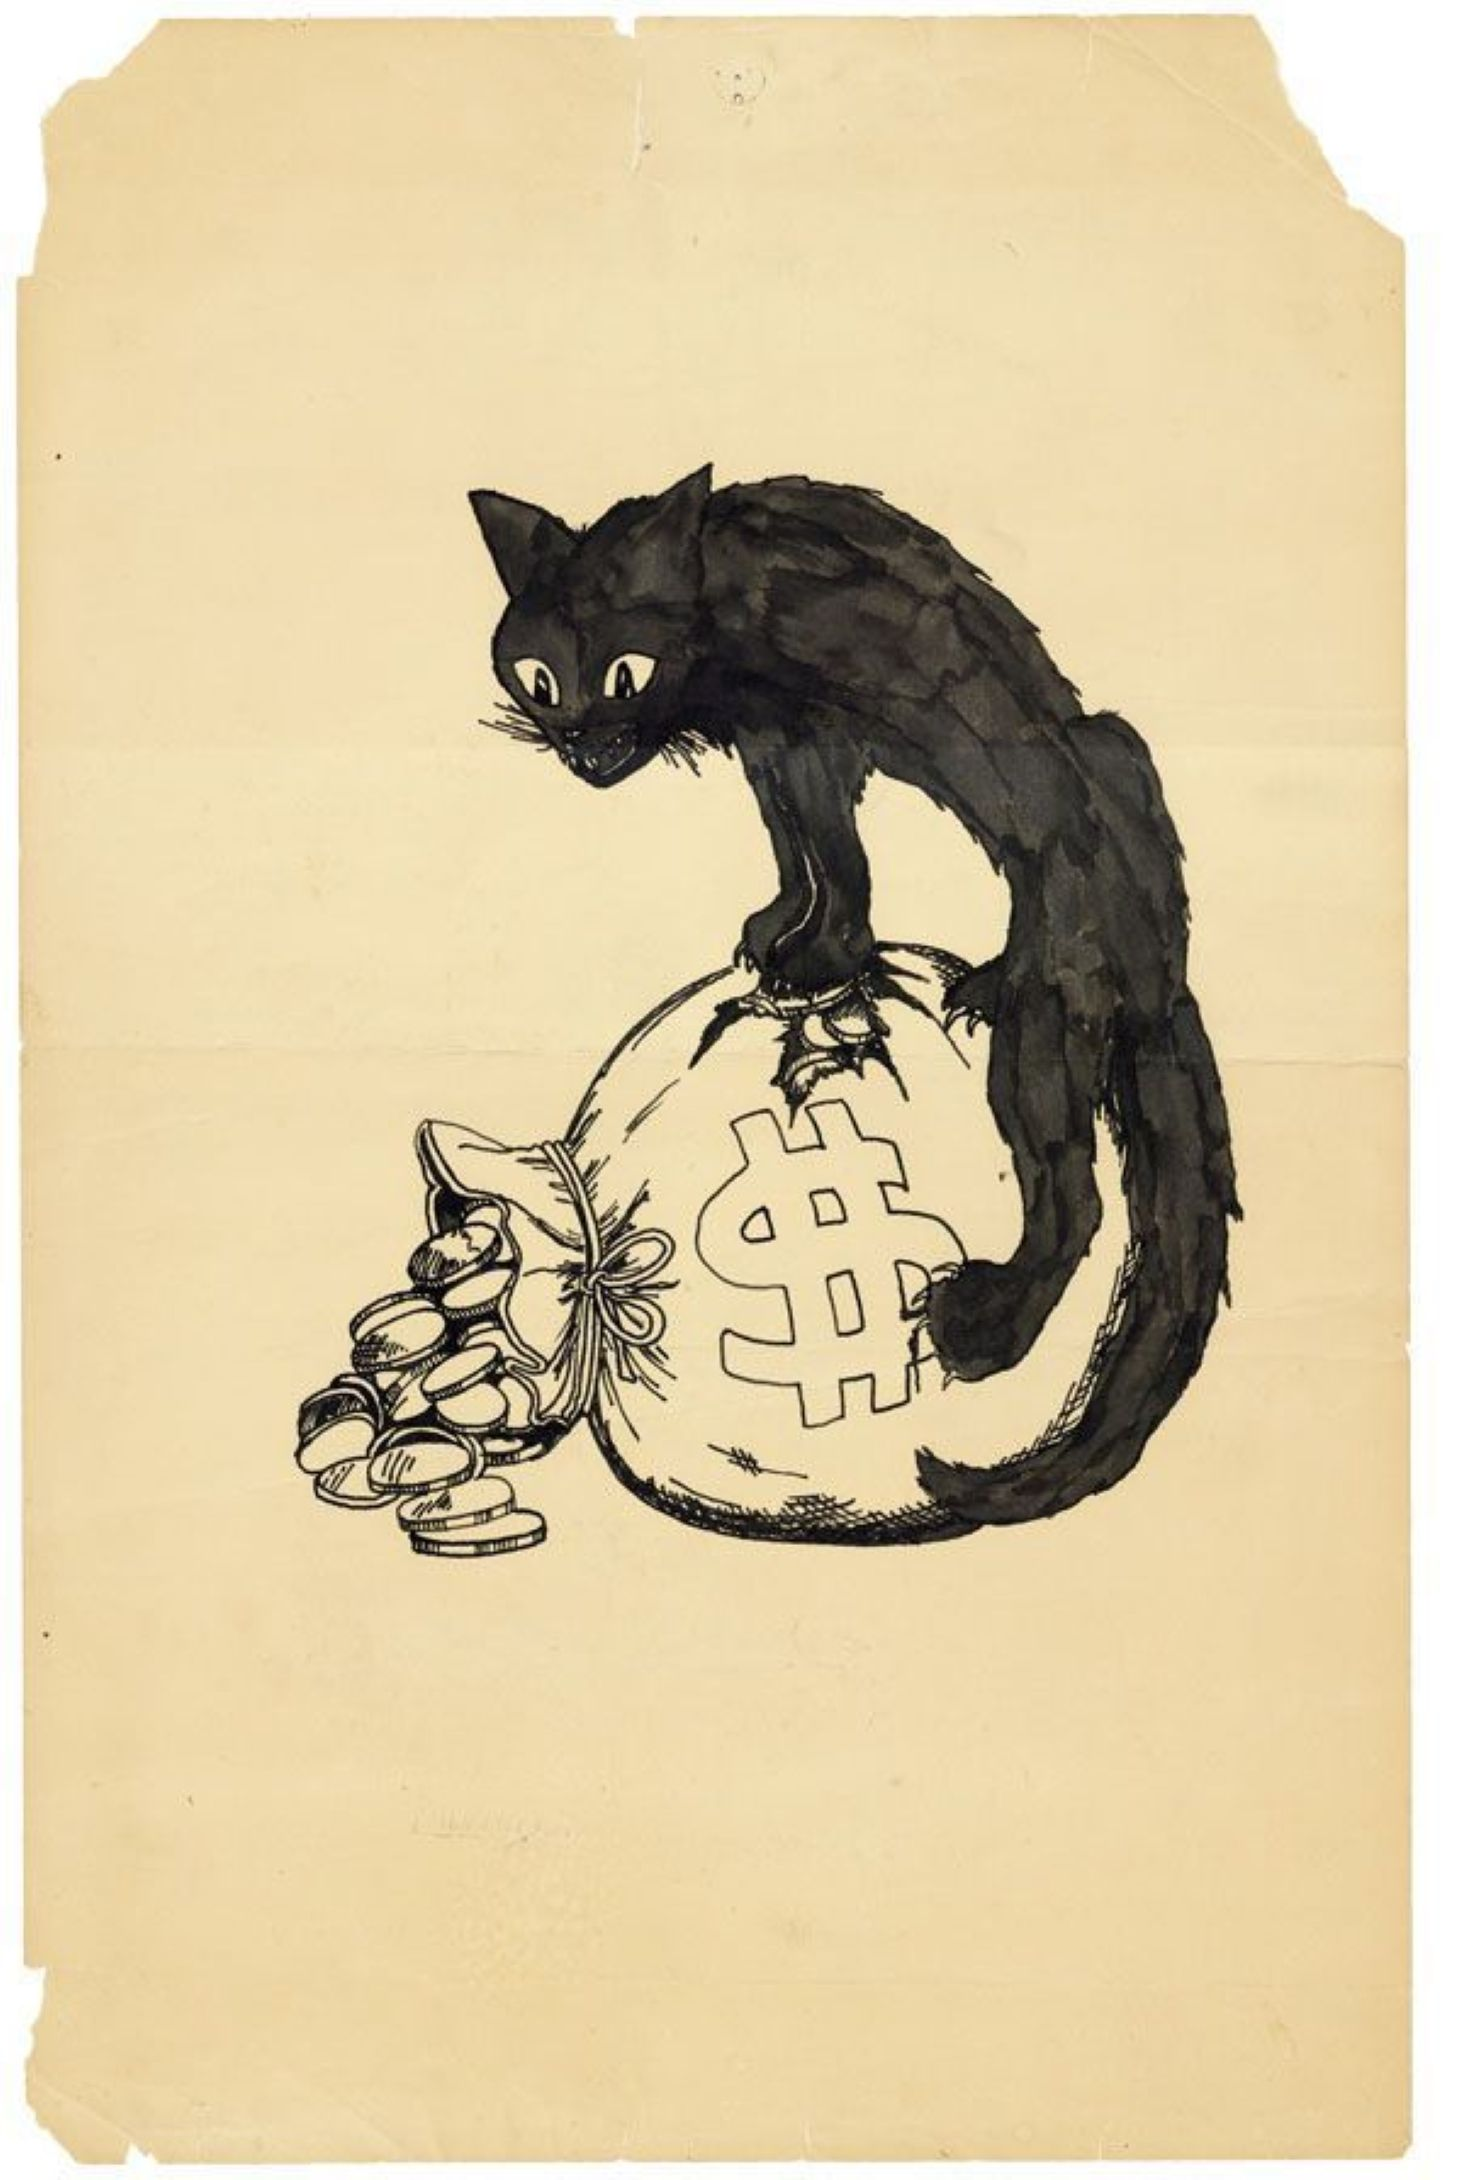 How Black Cats Went From Bad Luck to Symbols of Defiance